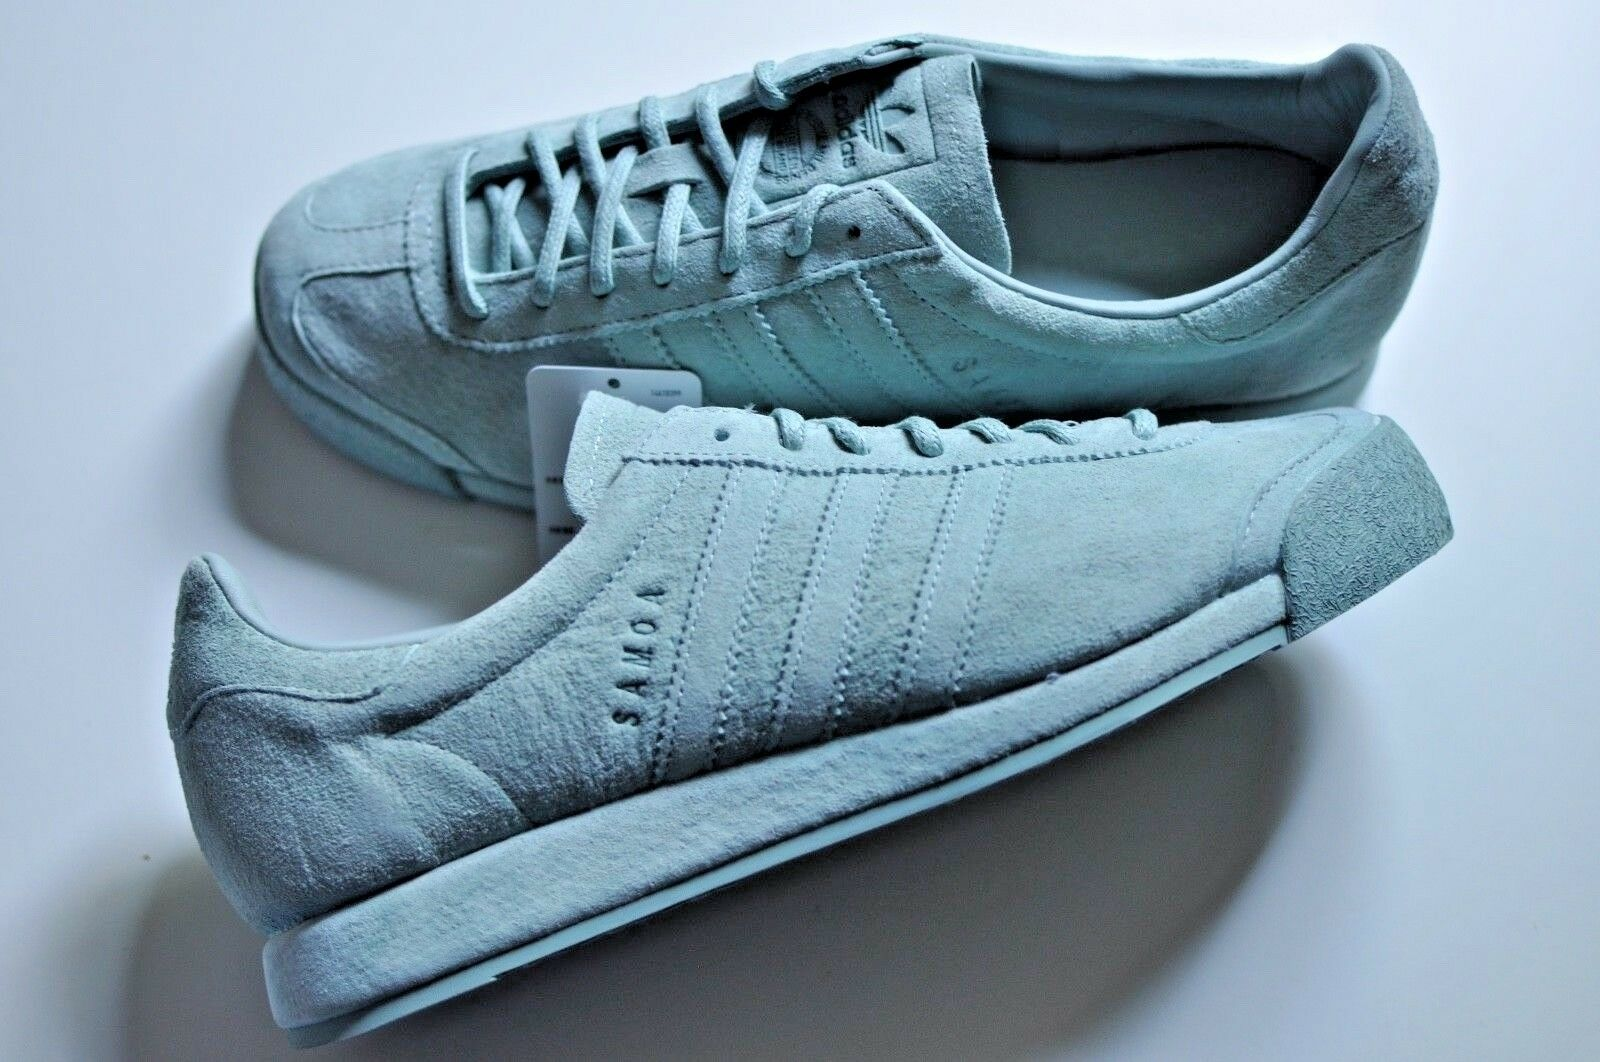 New Adidas Originals Samoa Tactile Vintage leather shoes size 9 Tactile Samoa Green f20117